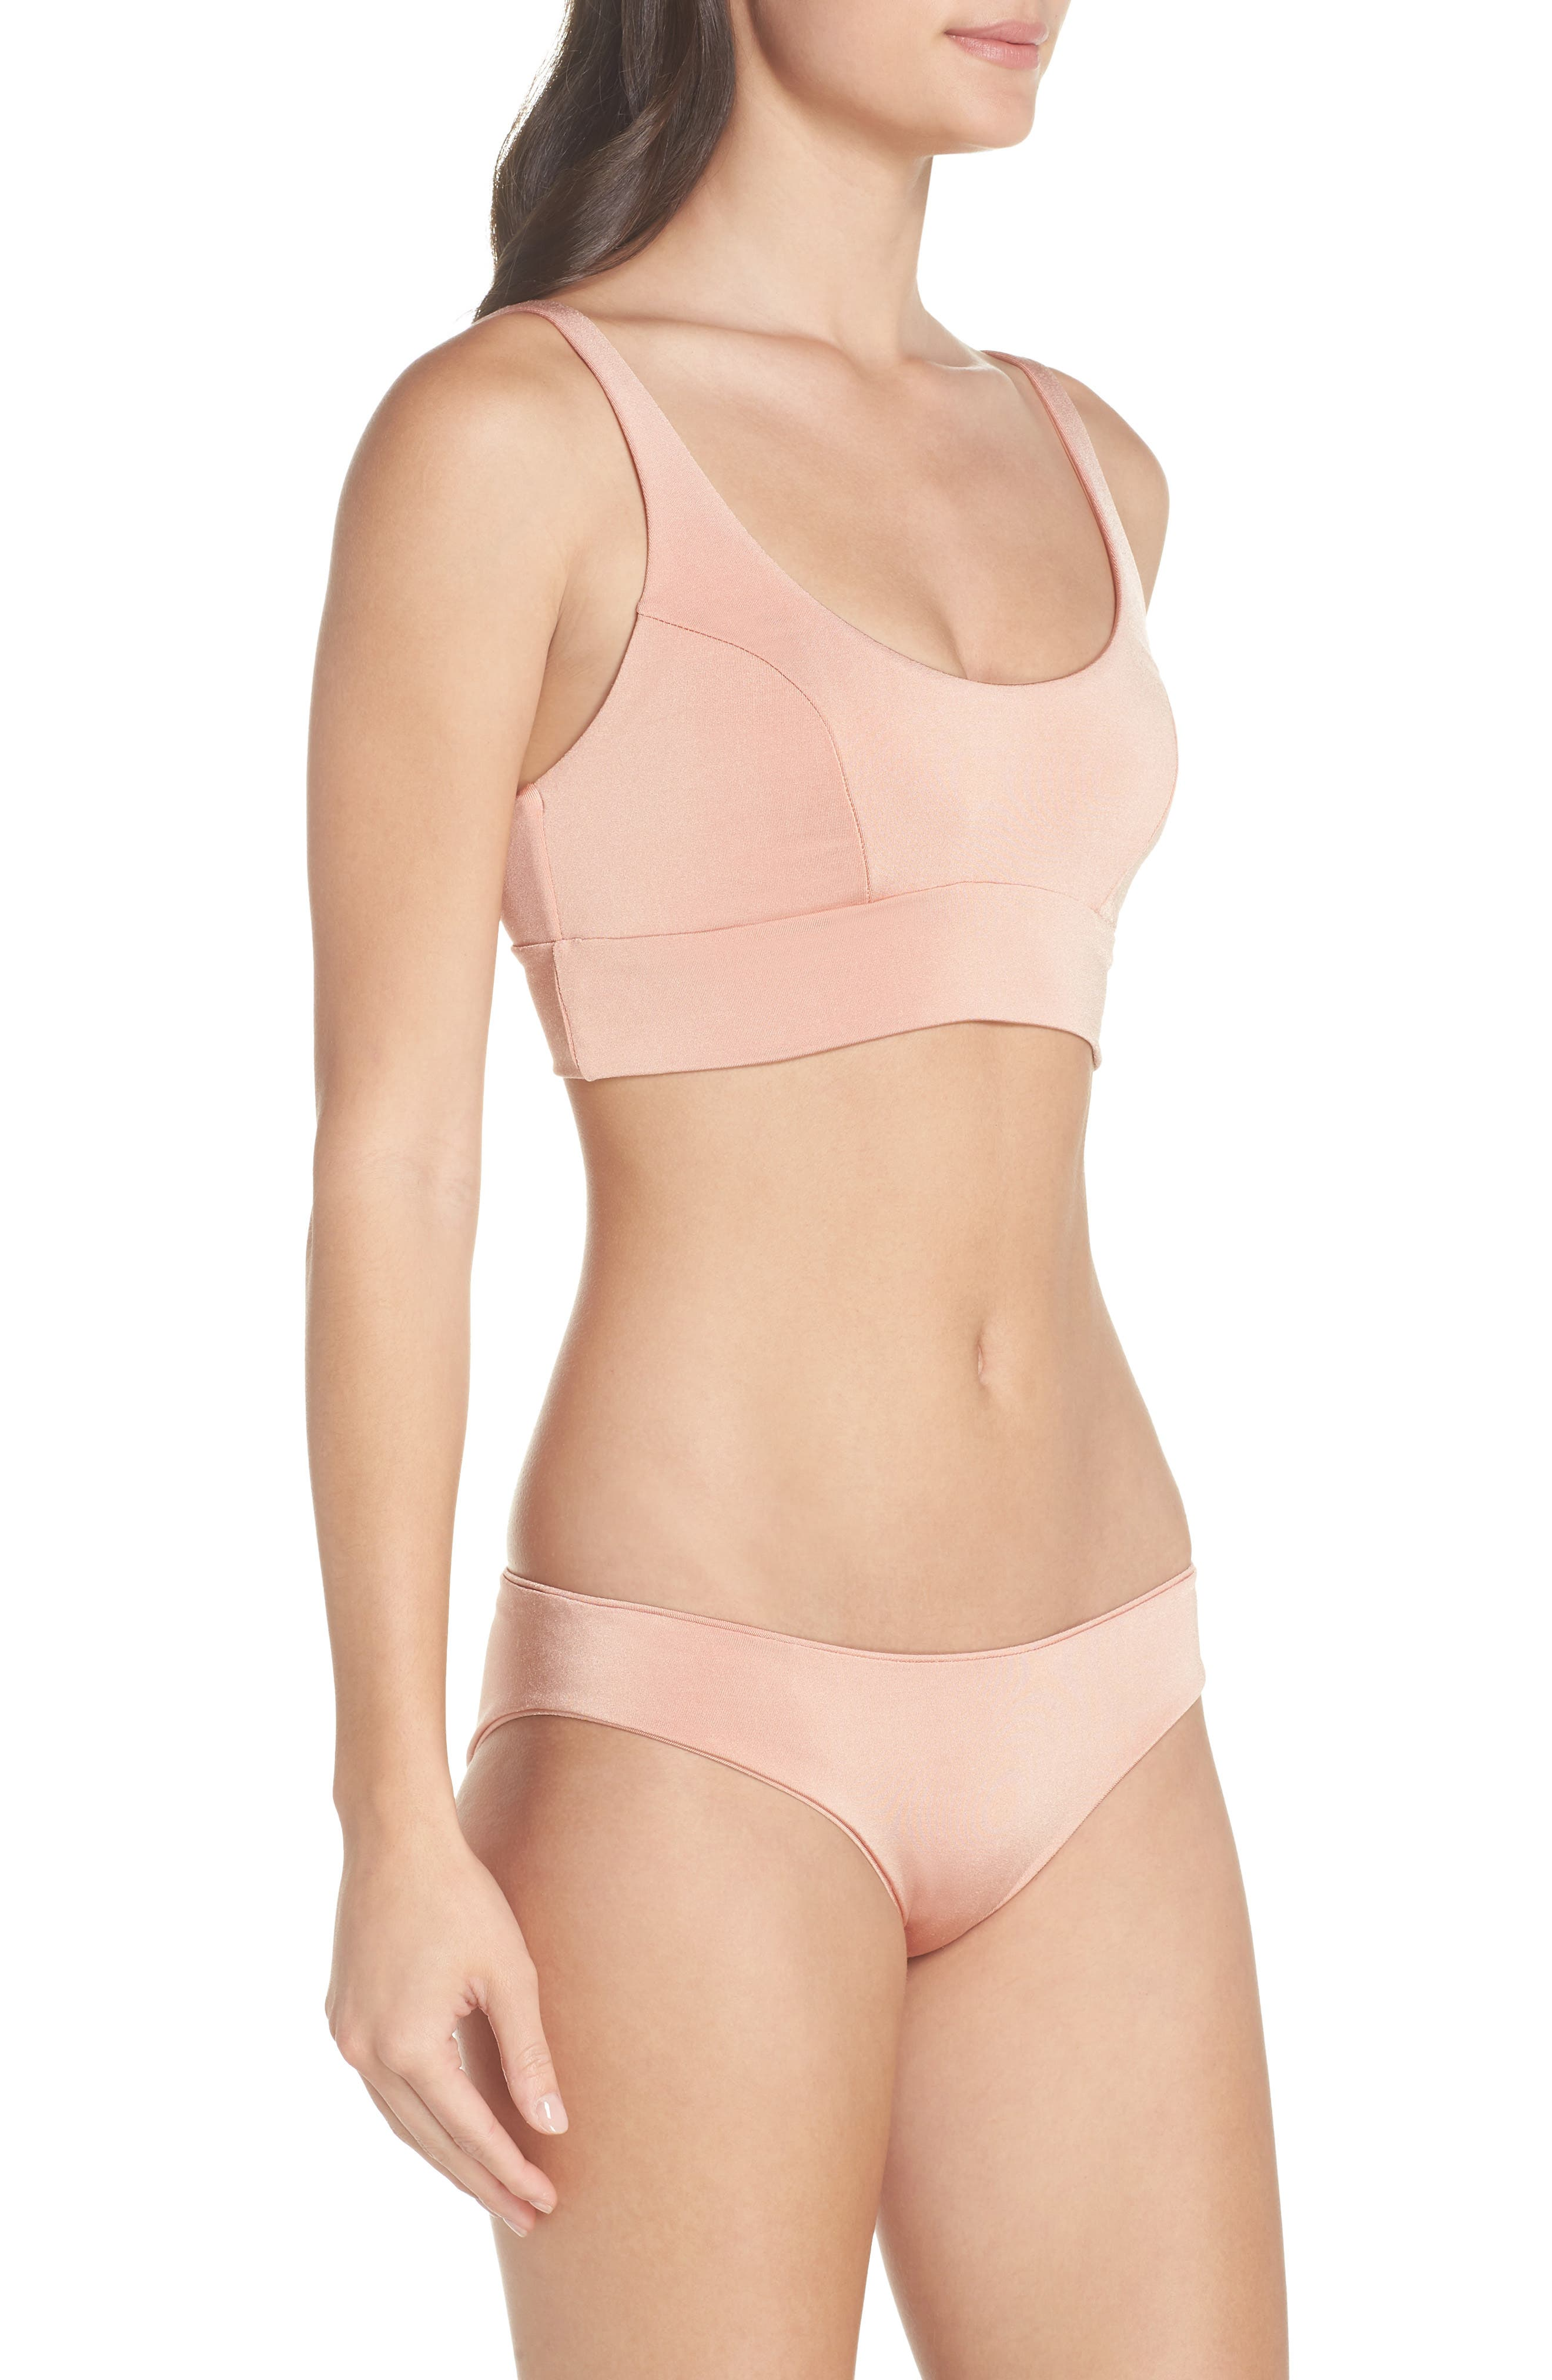 Charlie Bikini Bottoms,                             Alternate thumbnail 9, color,                             BLUSH & BASHFUL